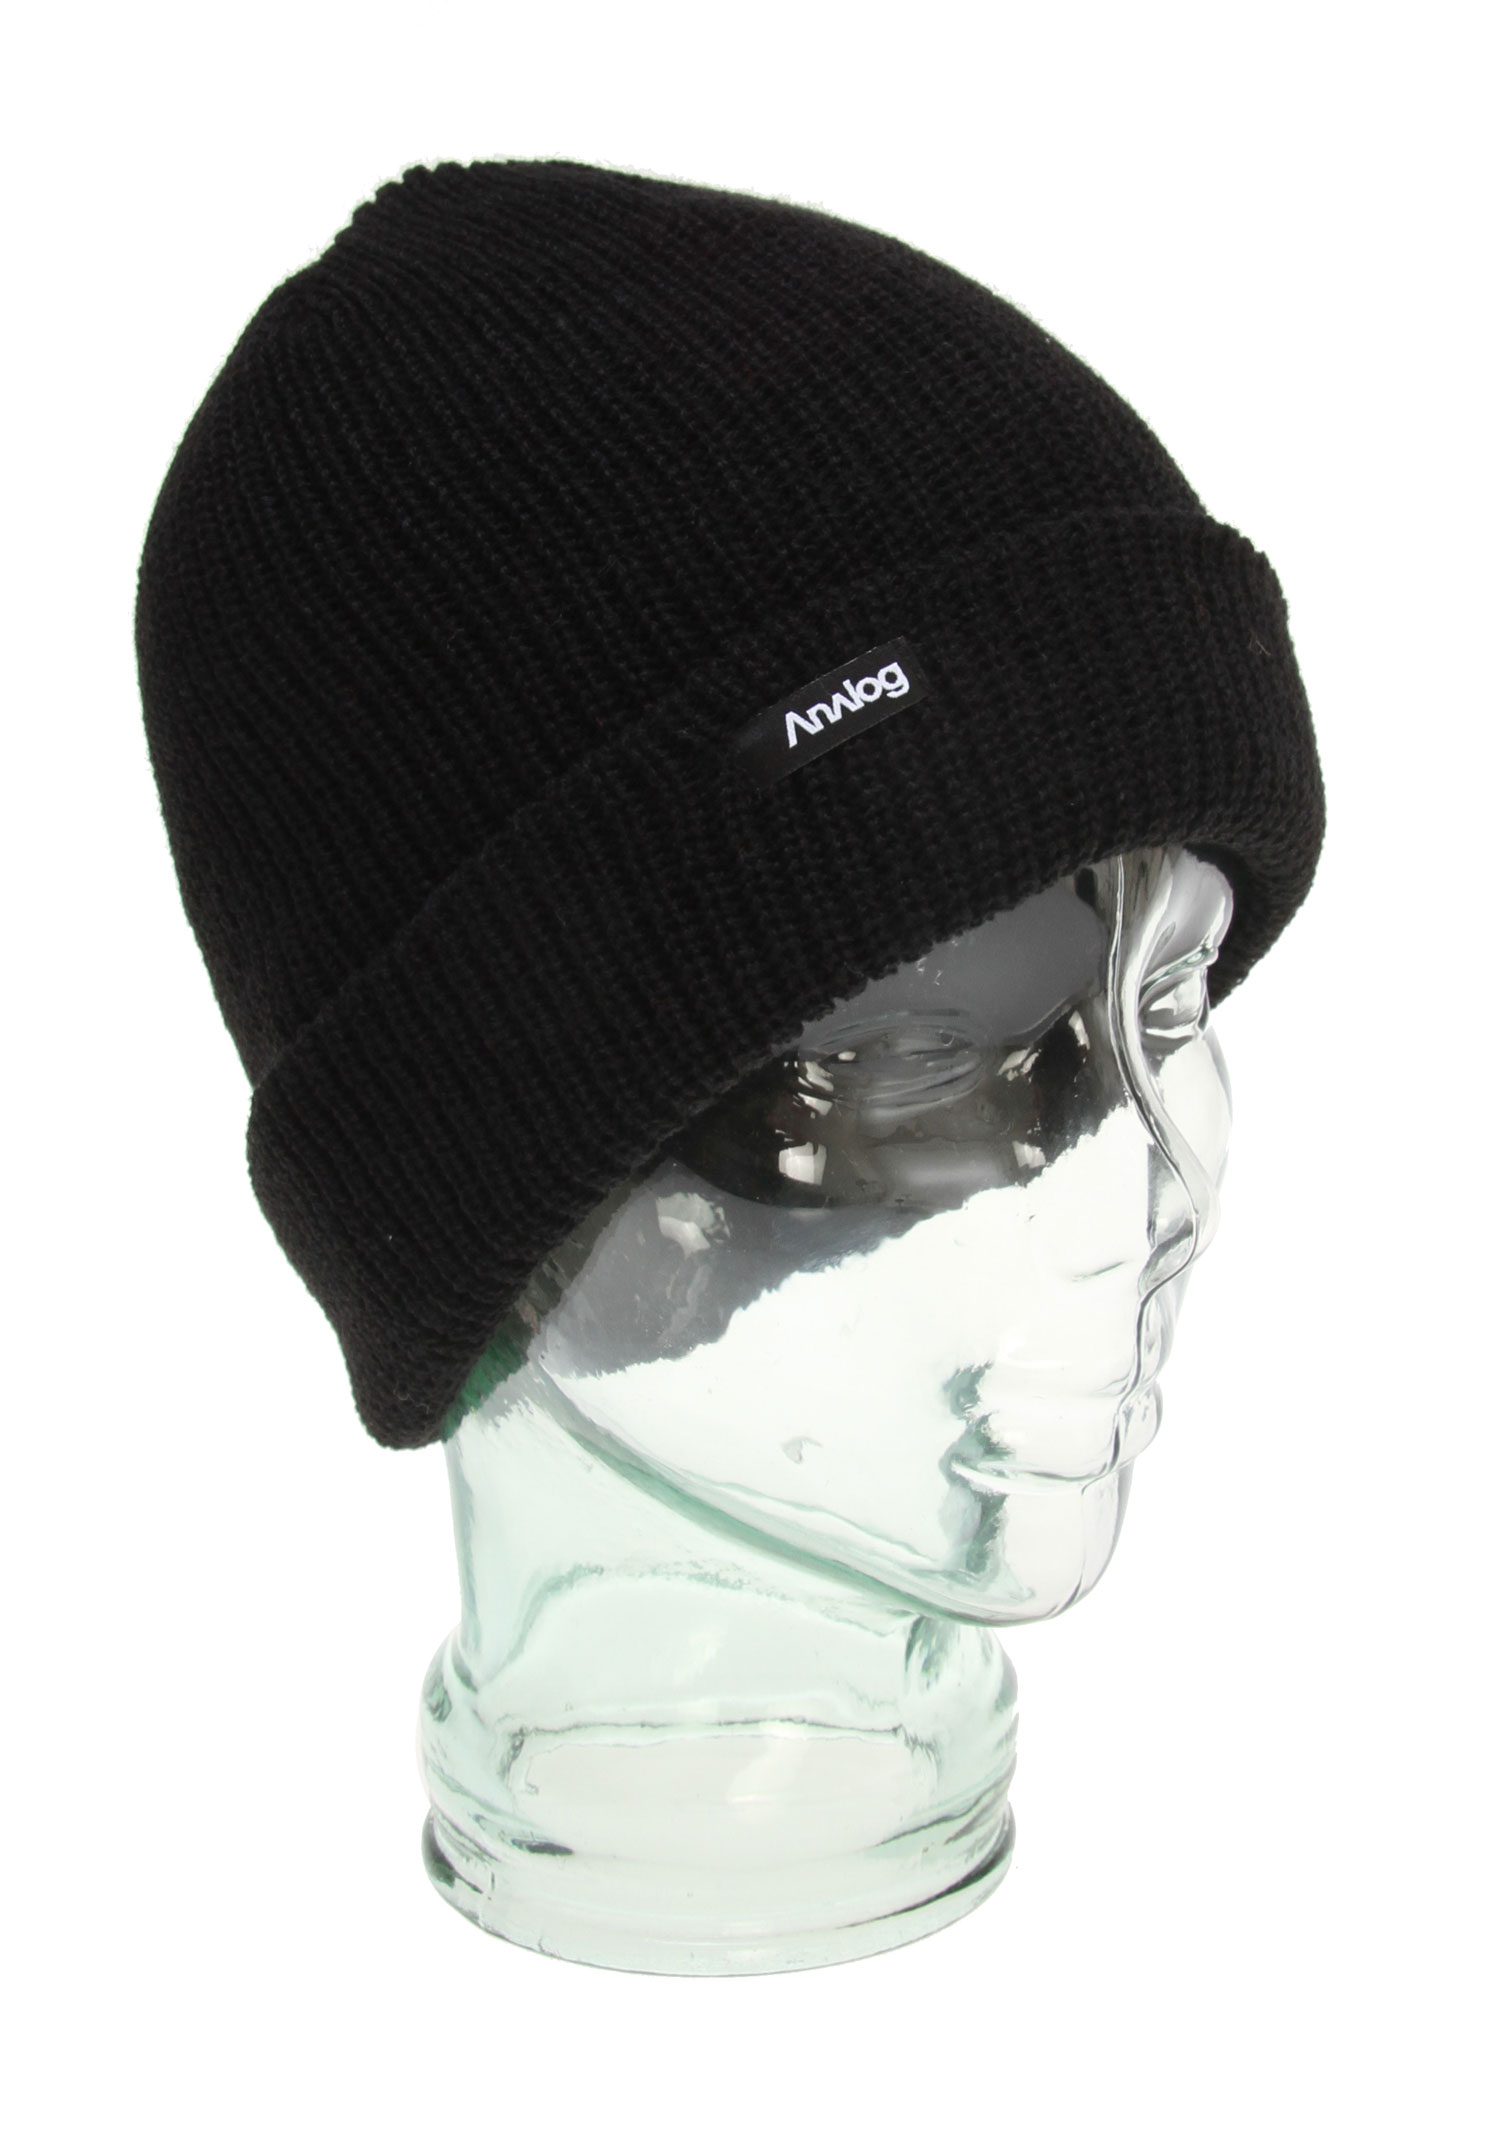 Lets stay warm this season with the Analog Beanie. Made with 100% acrylic, be sure to keep your head extra warm during the brutal cold winter. With its burglar fit, its classic design is simple featuring a solid color with a small logo embroidery. Wear it with your favorite winter coat and you're ready to hit the snowy winter.Key Features of the Analog Beanie: 100% acrylic Burglar fit - $15.95